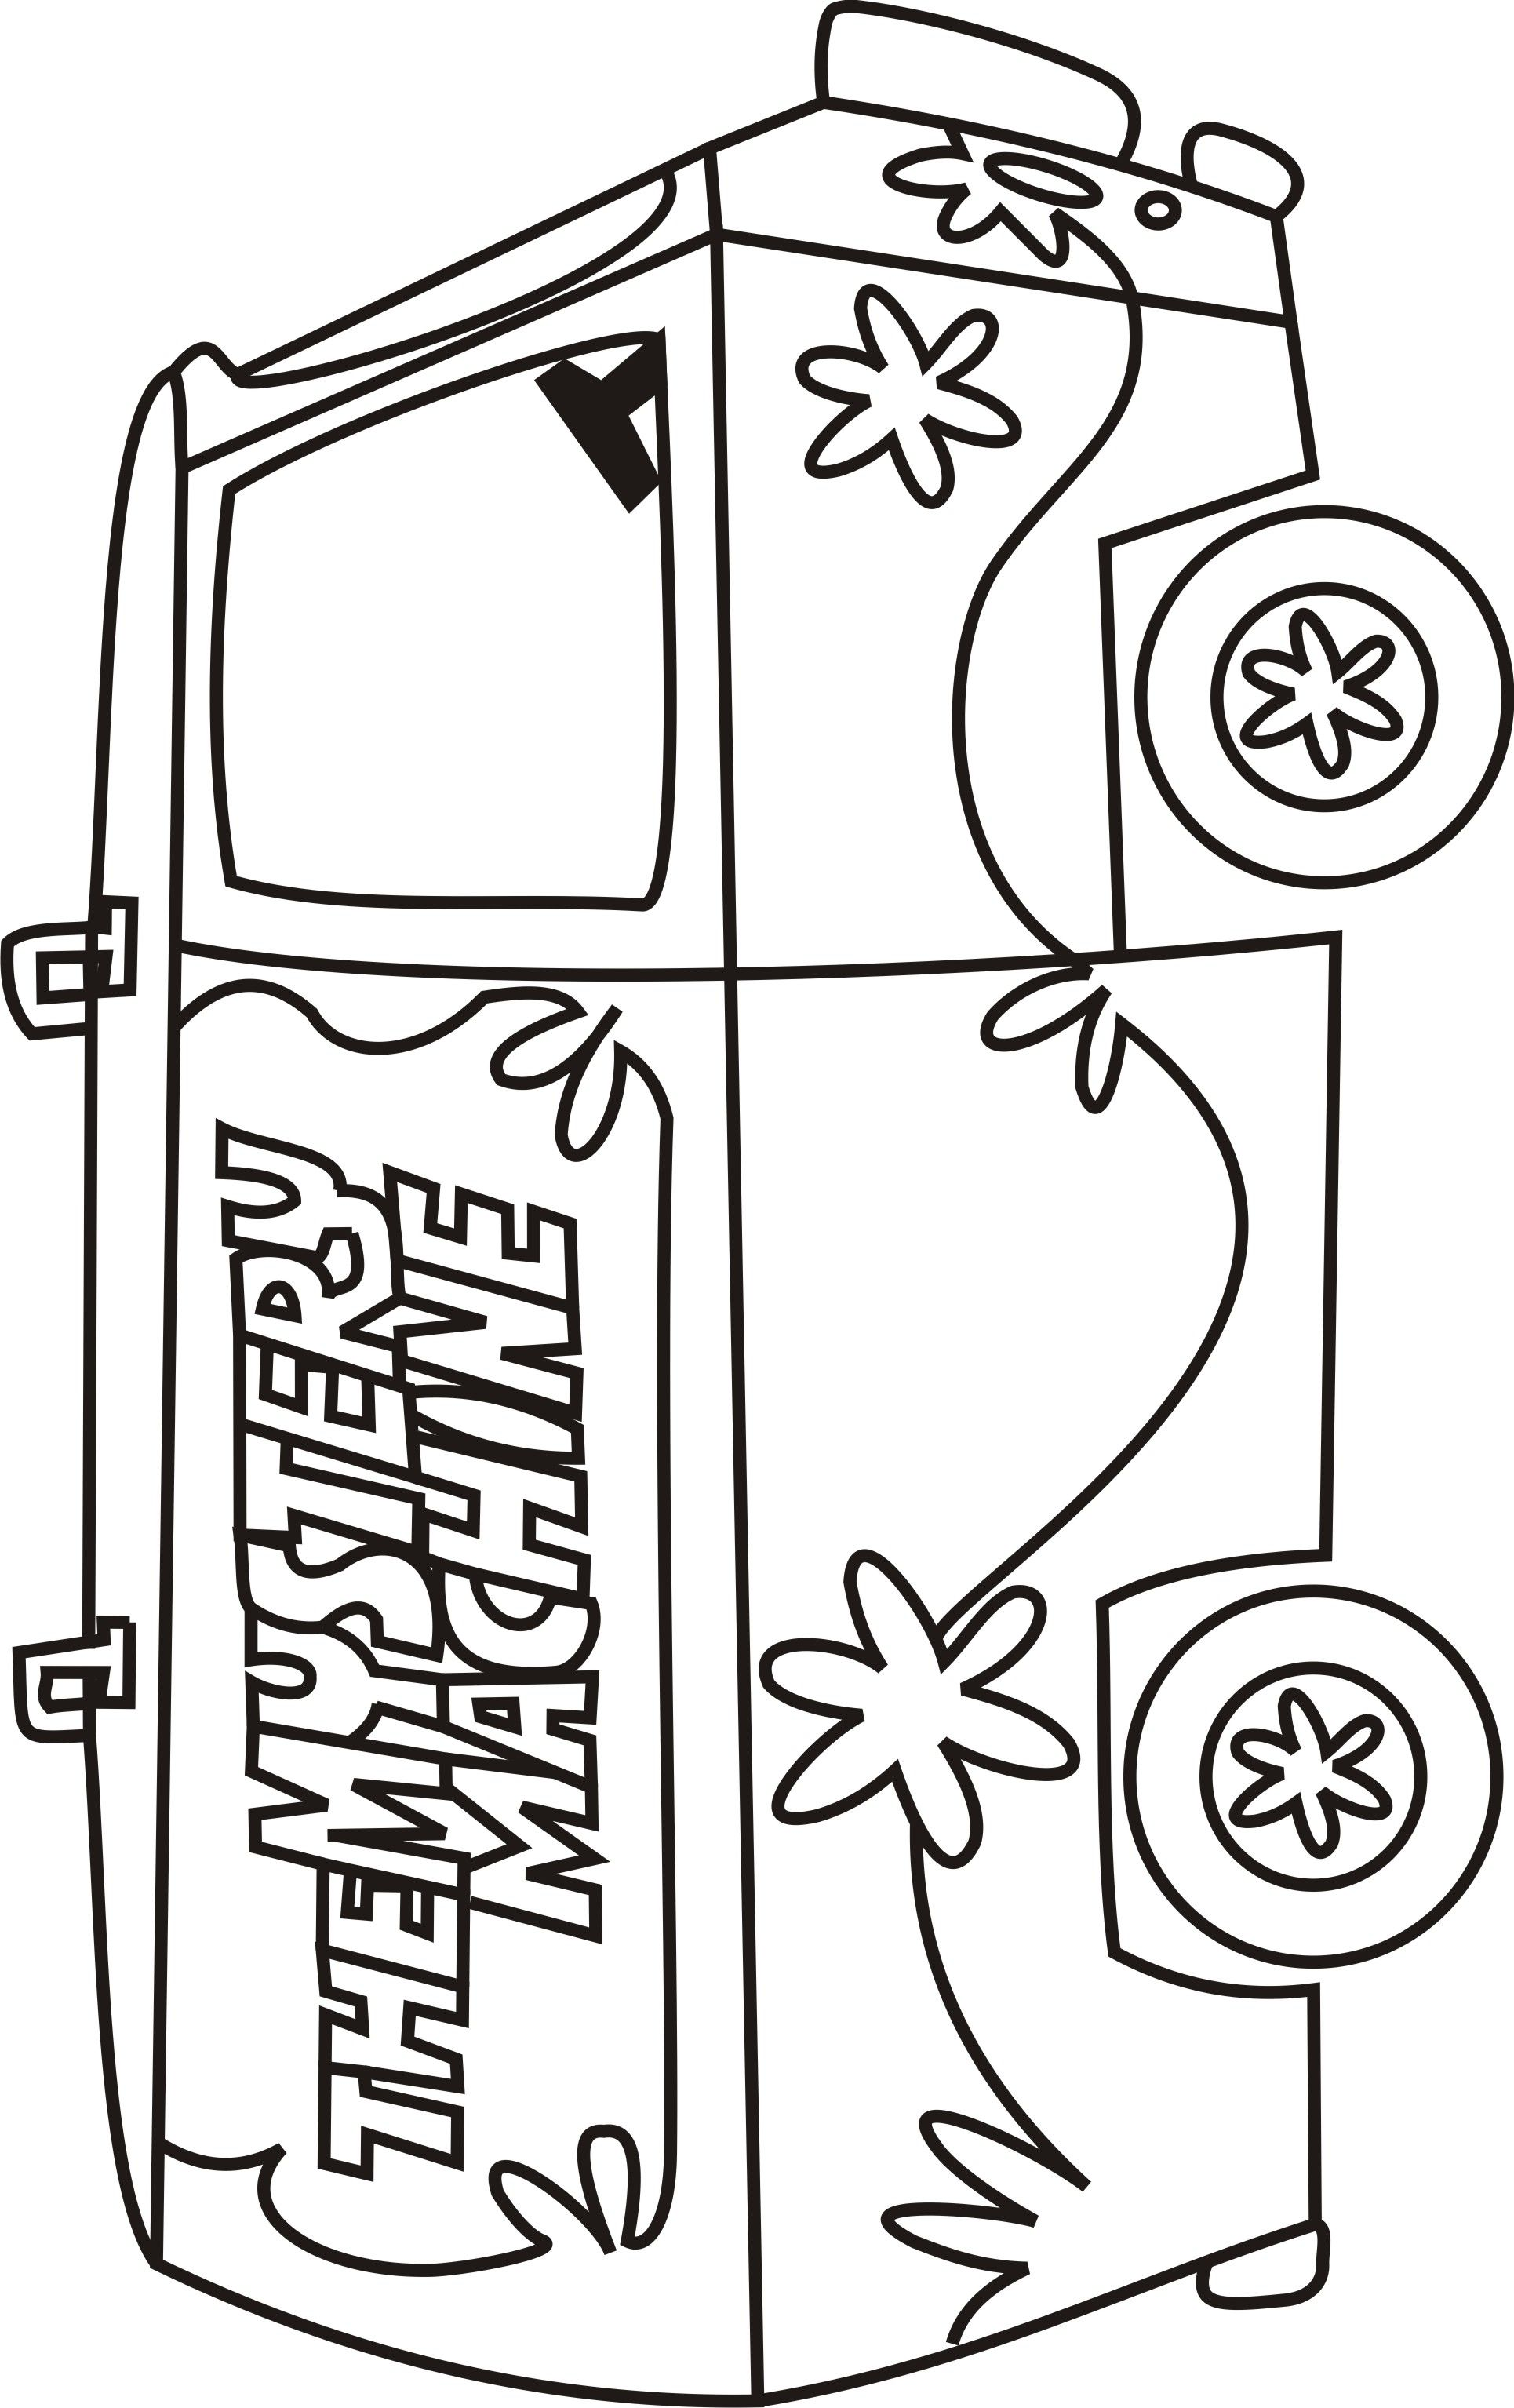 Scooby doo mystery machine coloring pages scooby doo for Mystery coloring pages